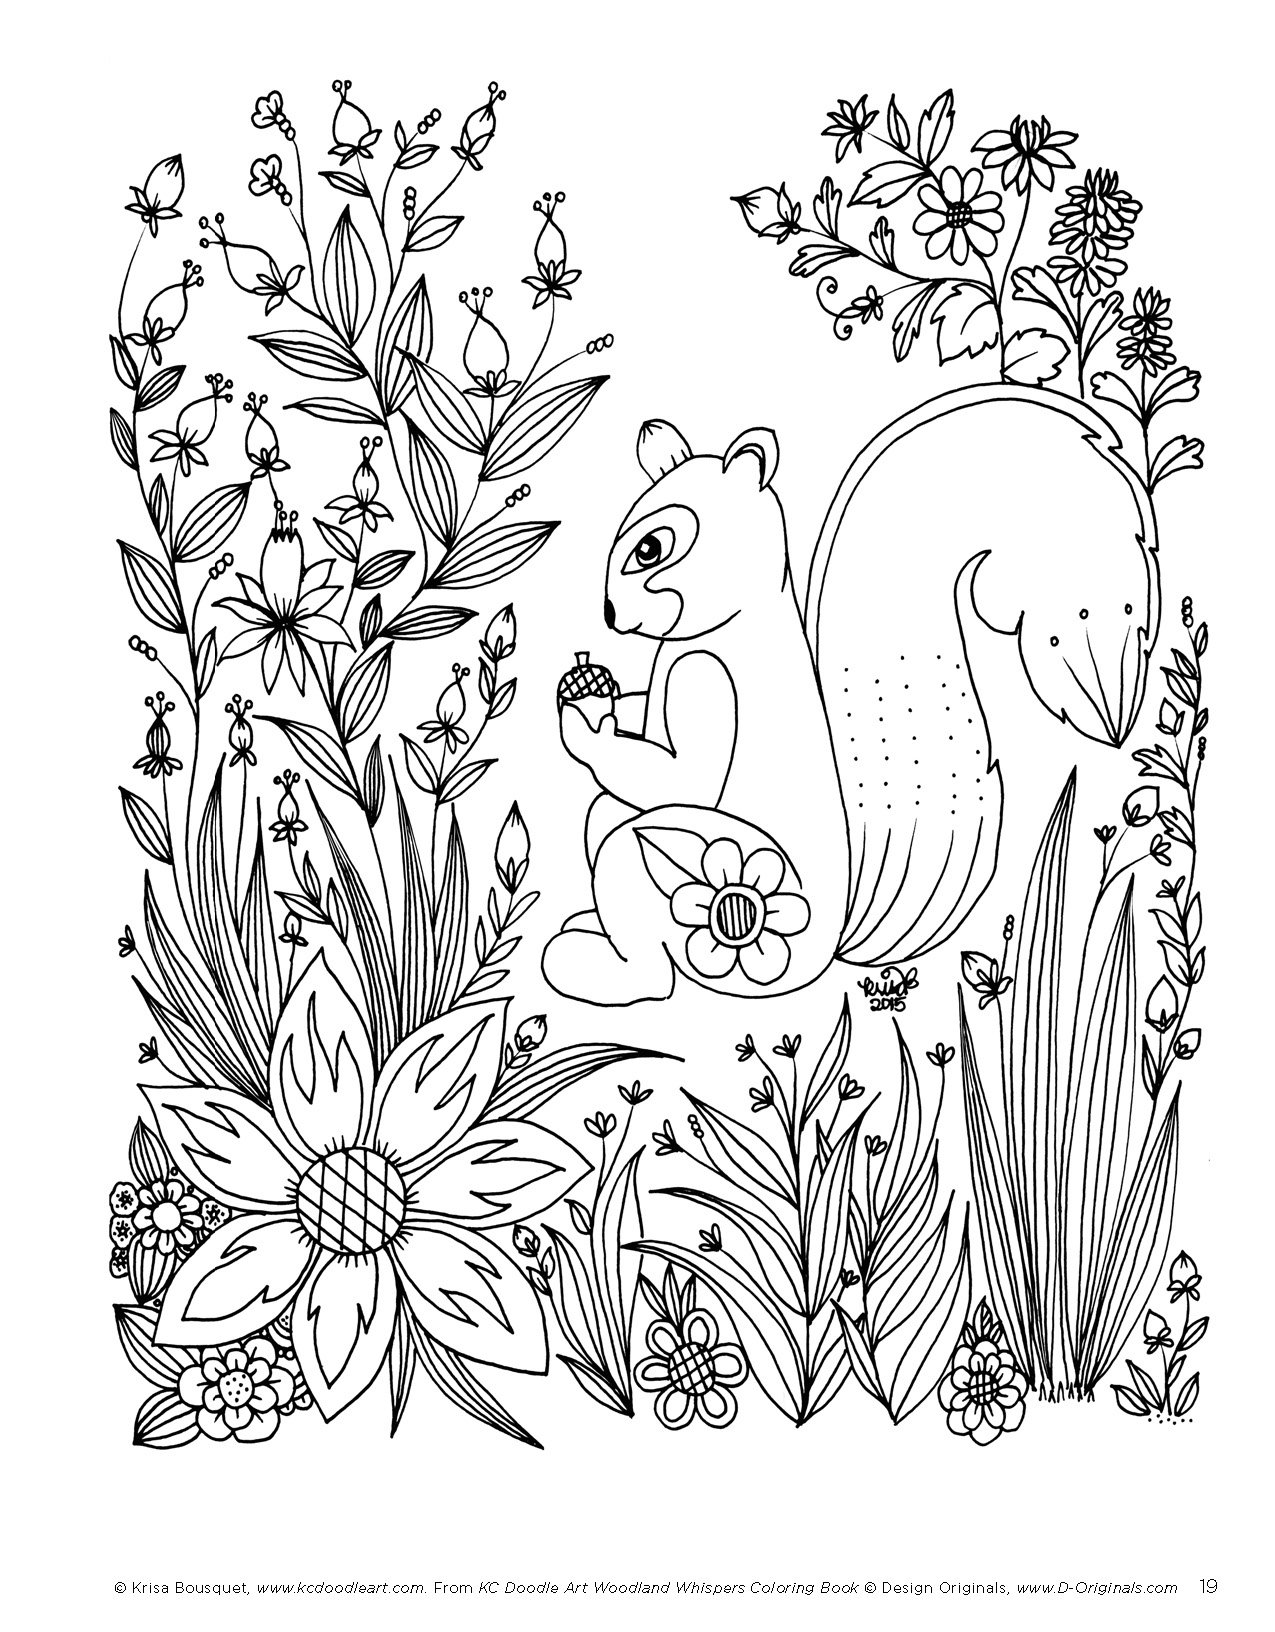 Amazon KC Doodle Art Woodland Whispers Coloring Book